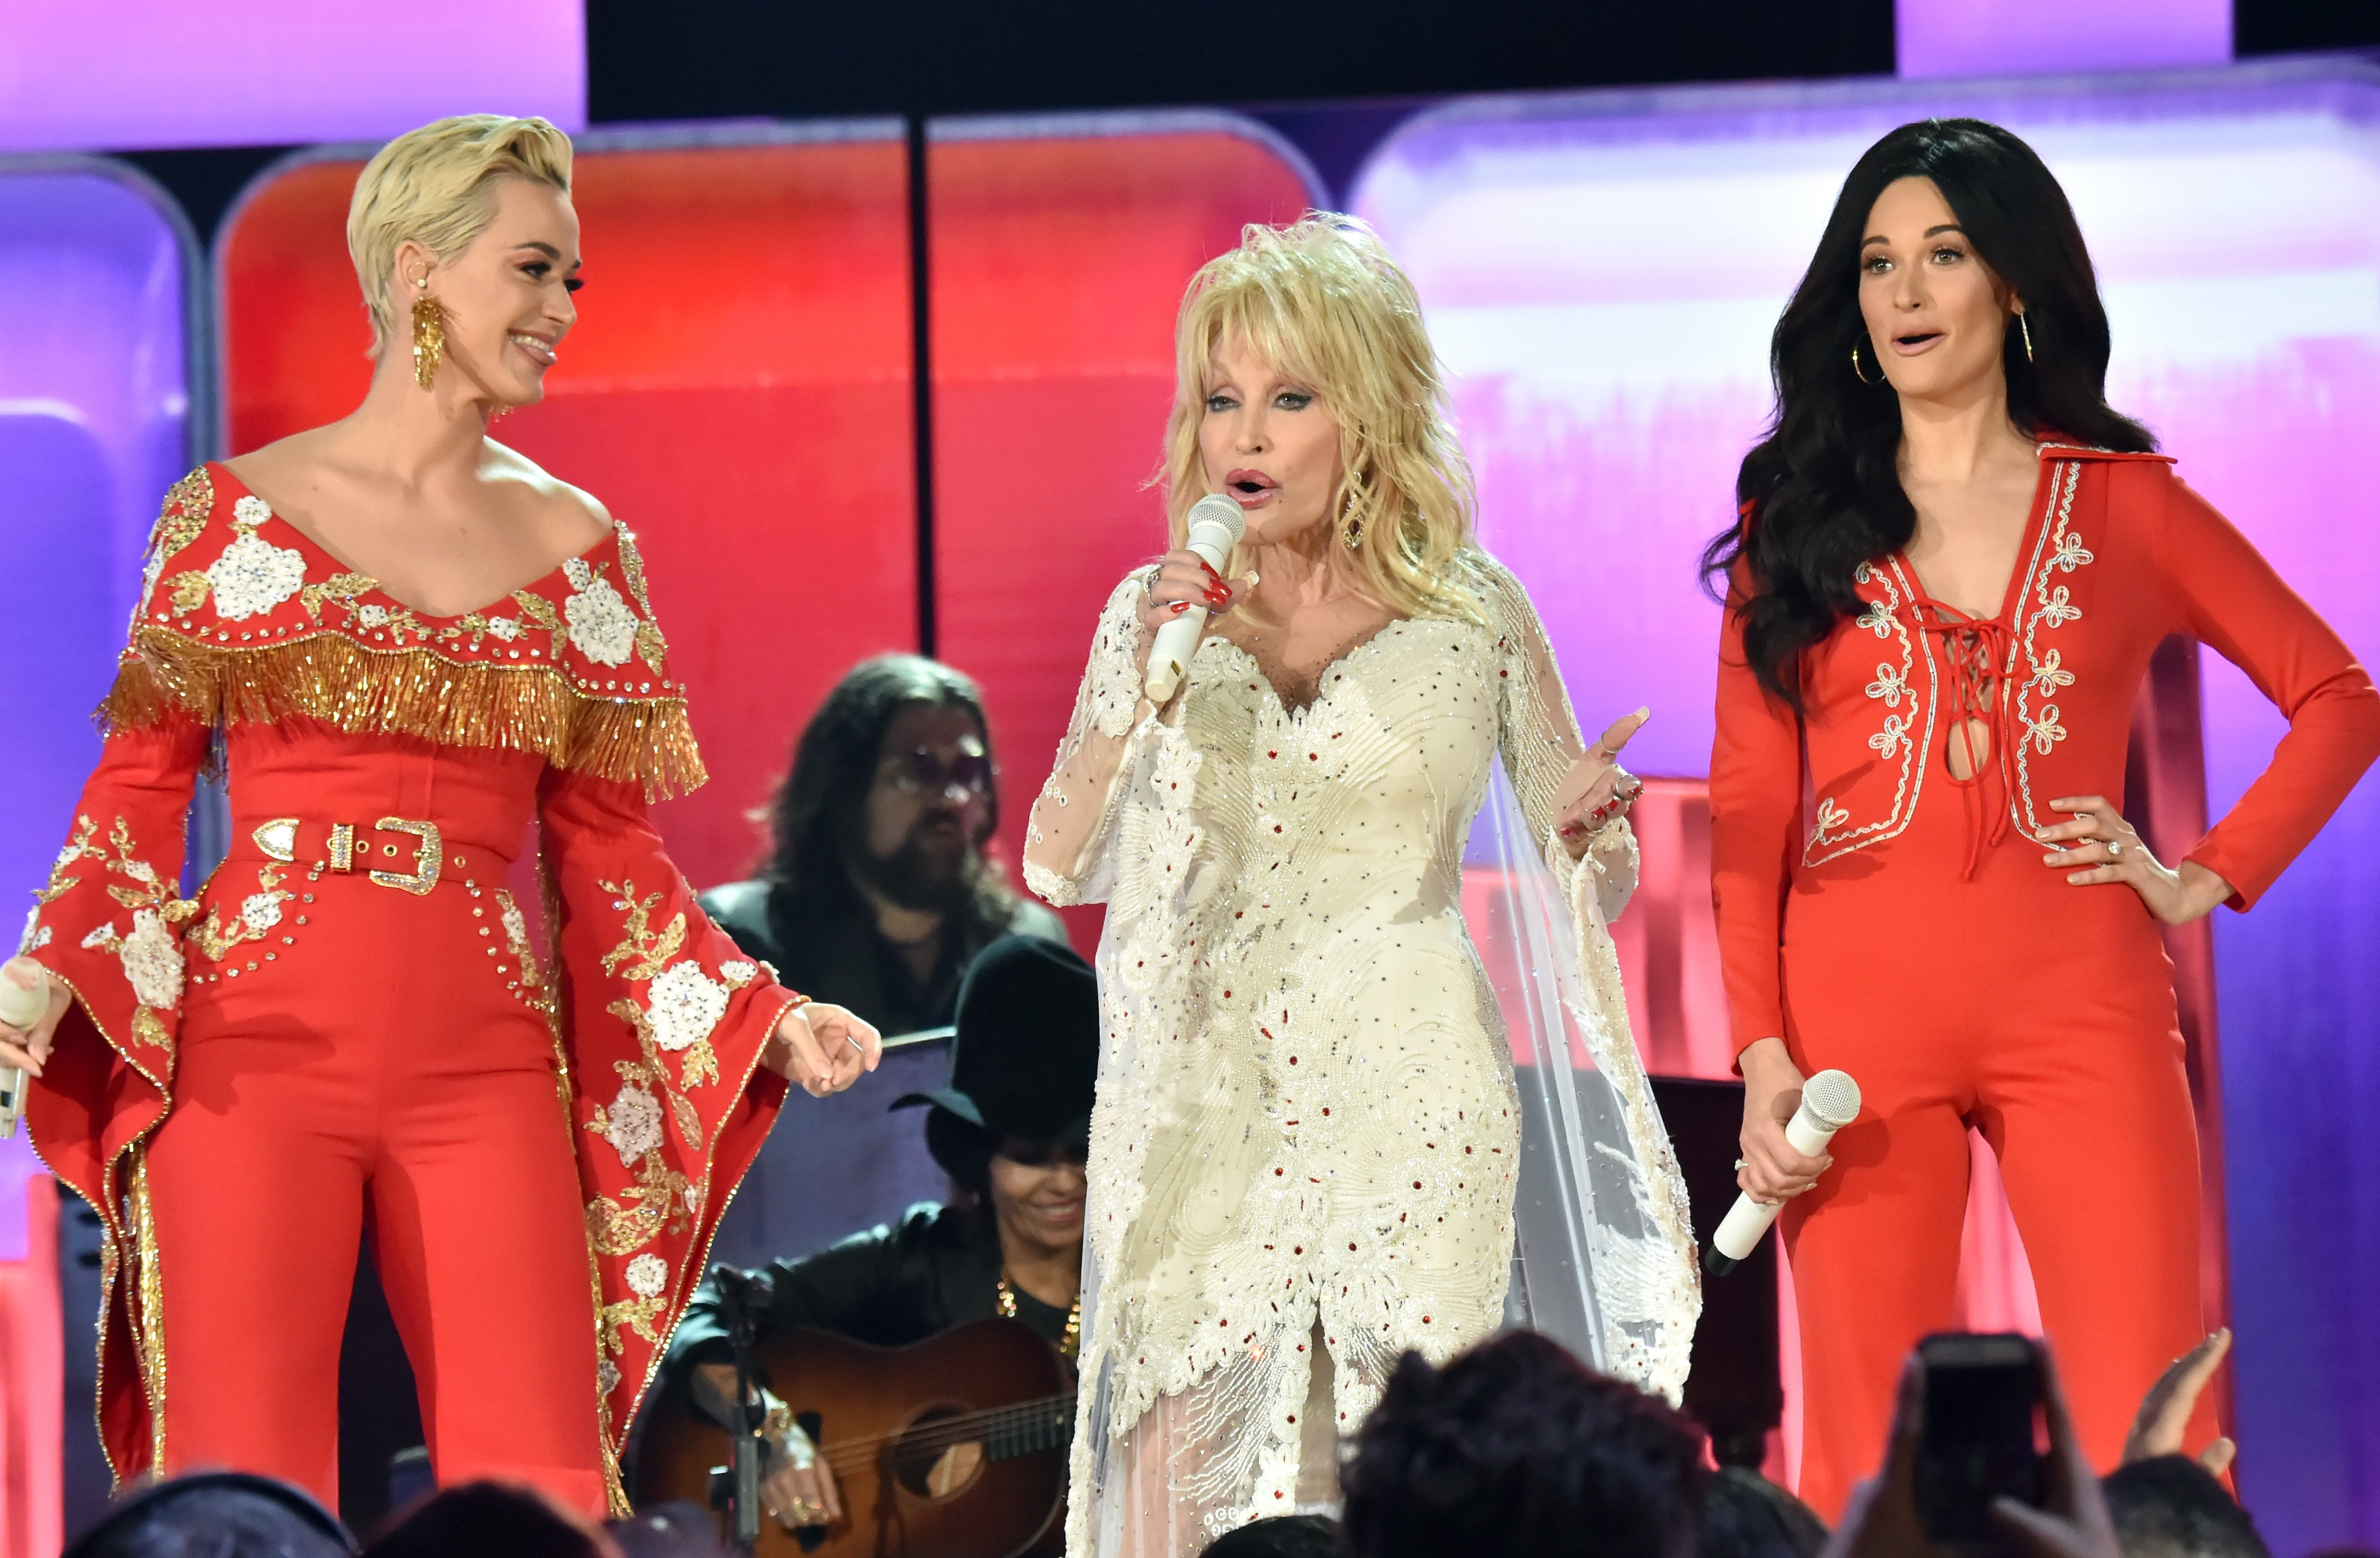 Doll5y Parton singing alongside Katy Perry and Maren Morris during a tribute to herself at the 61st Grammy Awards | Photo: Getty Images